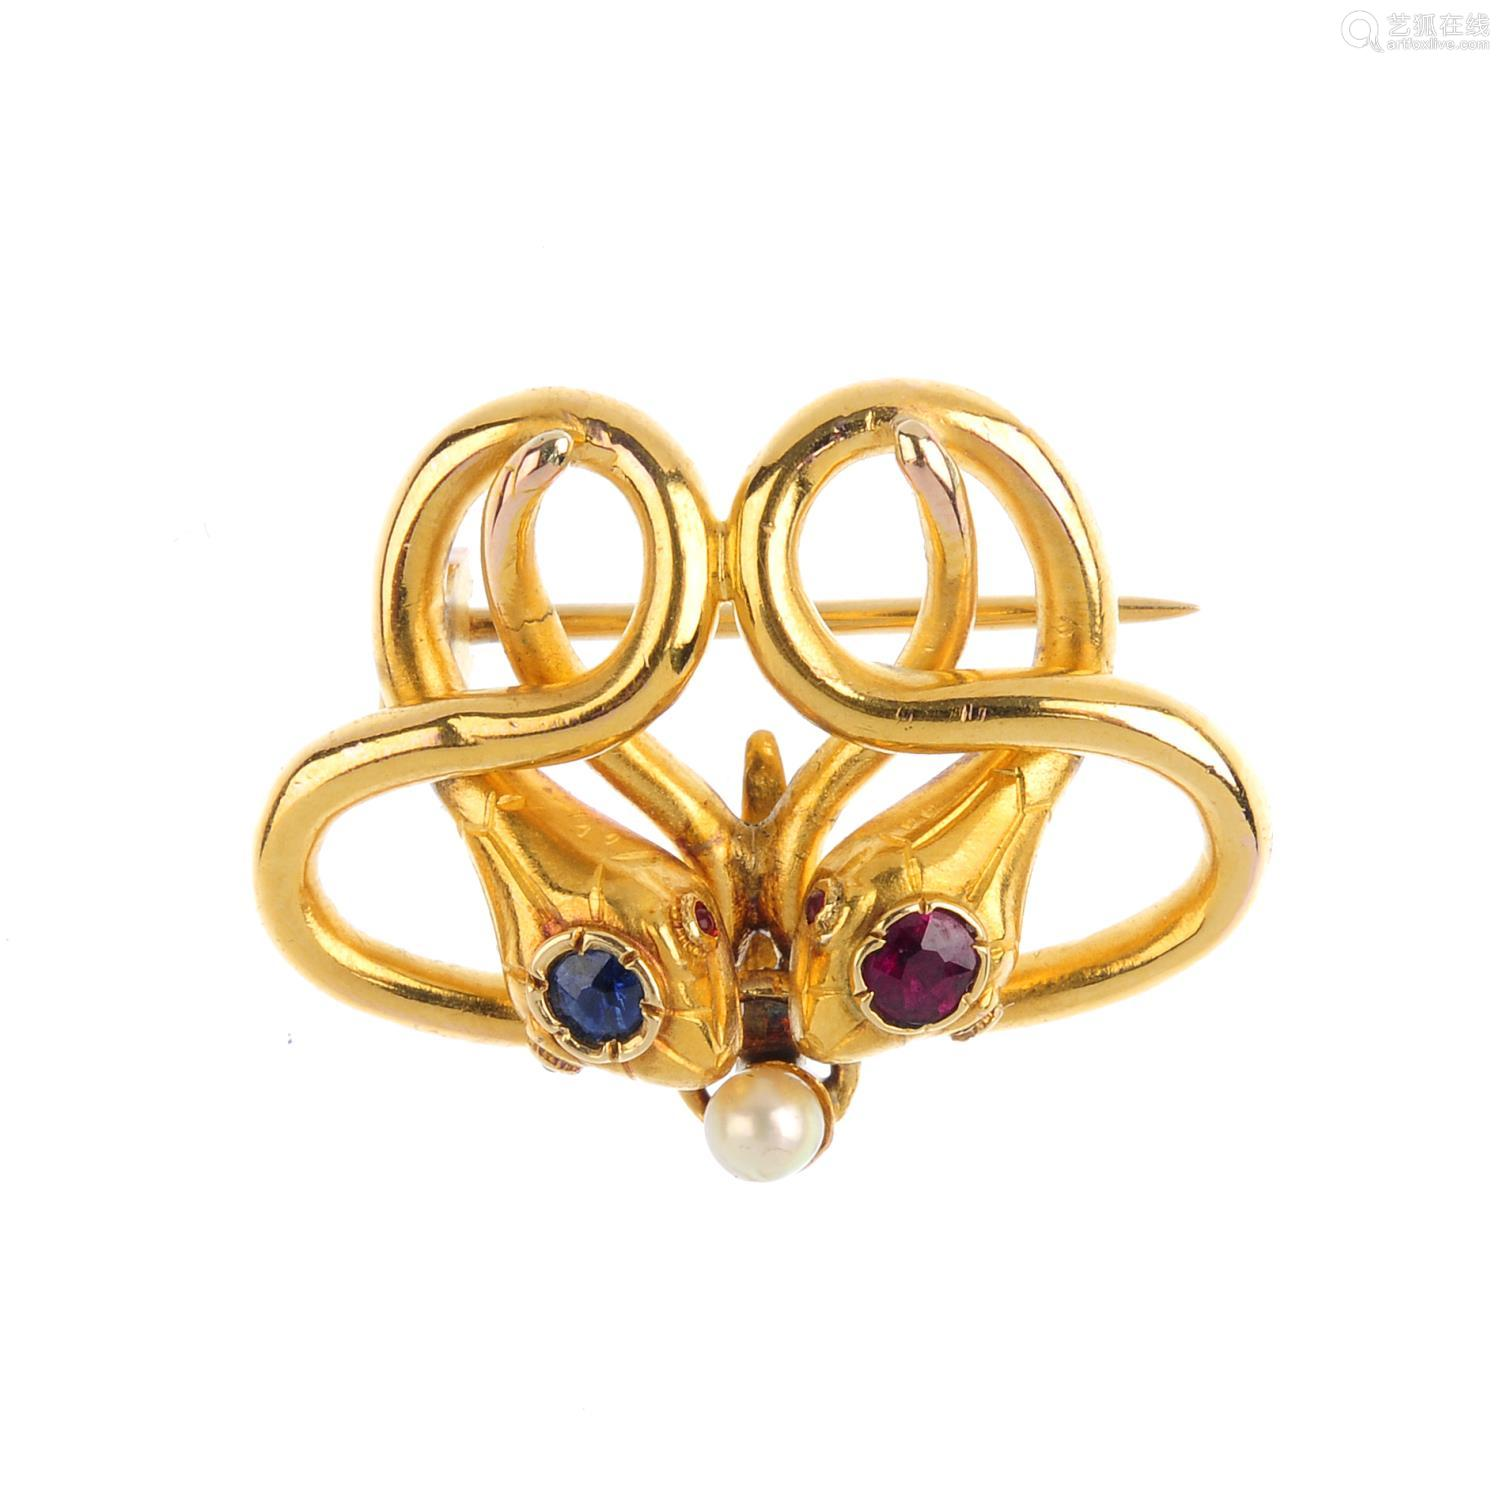 A late Victorian 18ct gold gem-set snake brooch. Designed as two snakes, with cushion-shape ruby